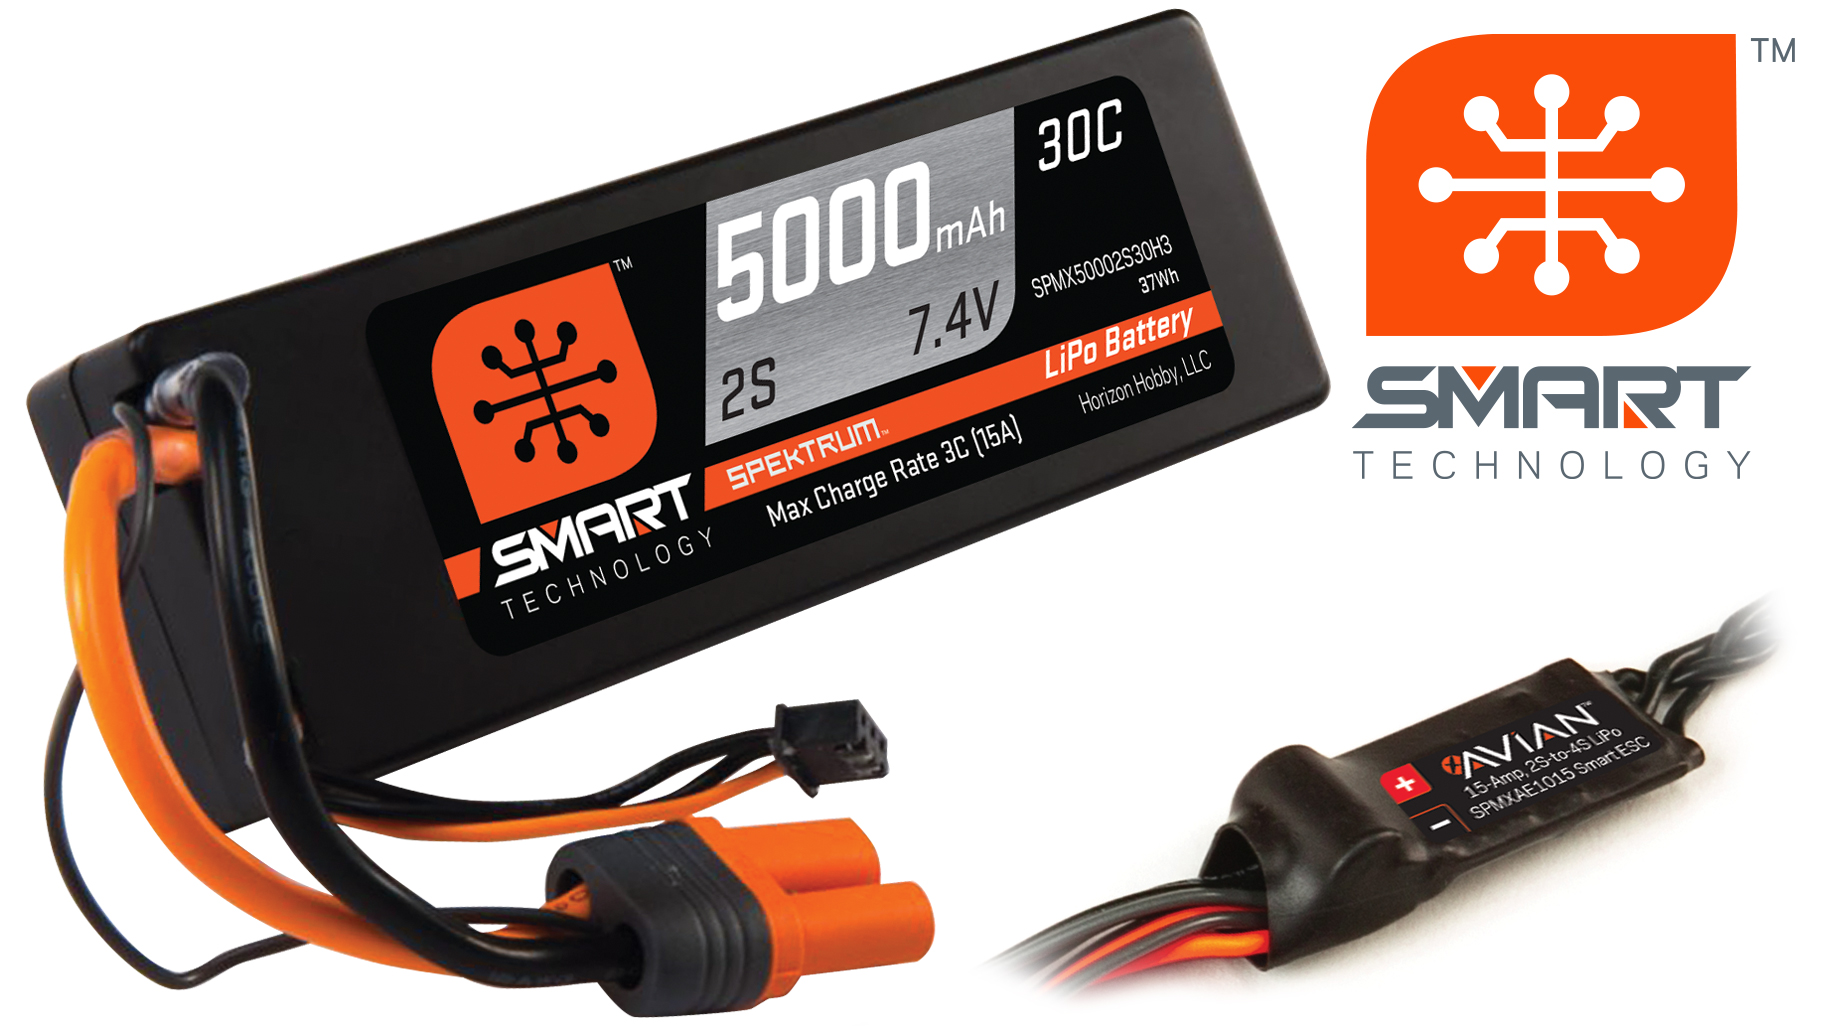 Spektrum SMART LiPo battery and AVIAN ESC. Products not included